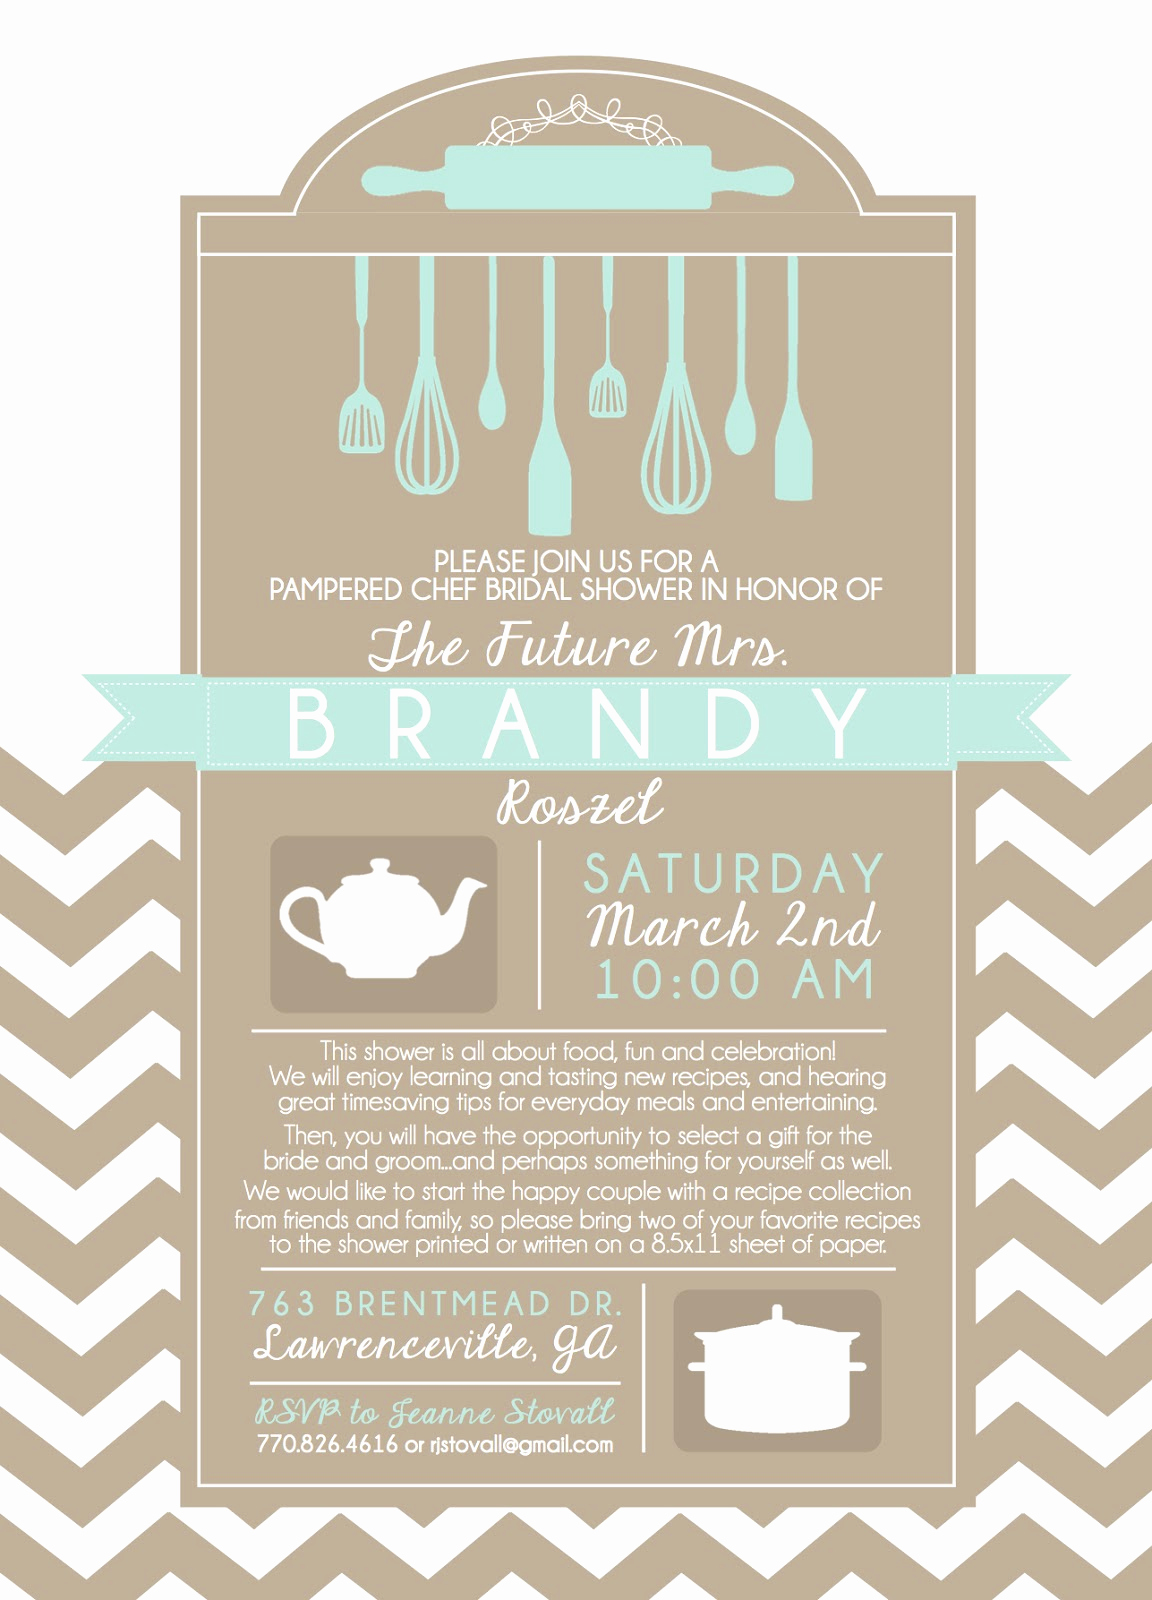 Pampered Chef Invitation Template New Pampered Chef Invitation Templates